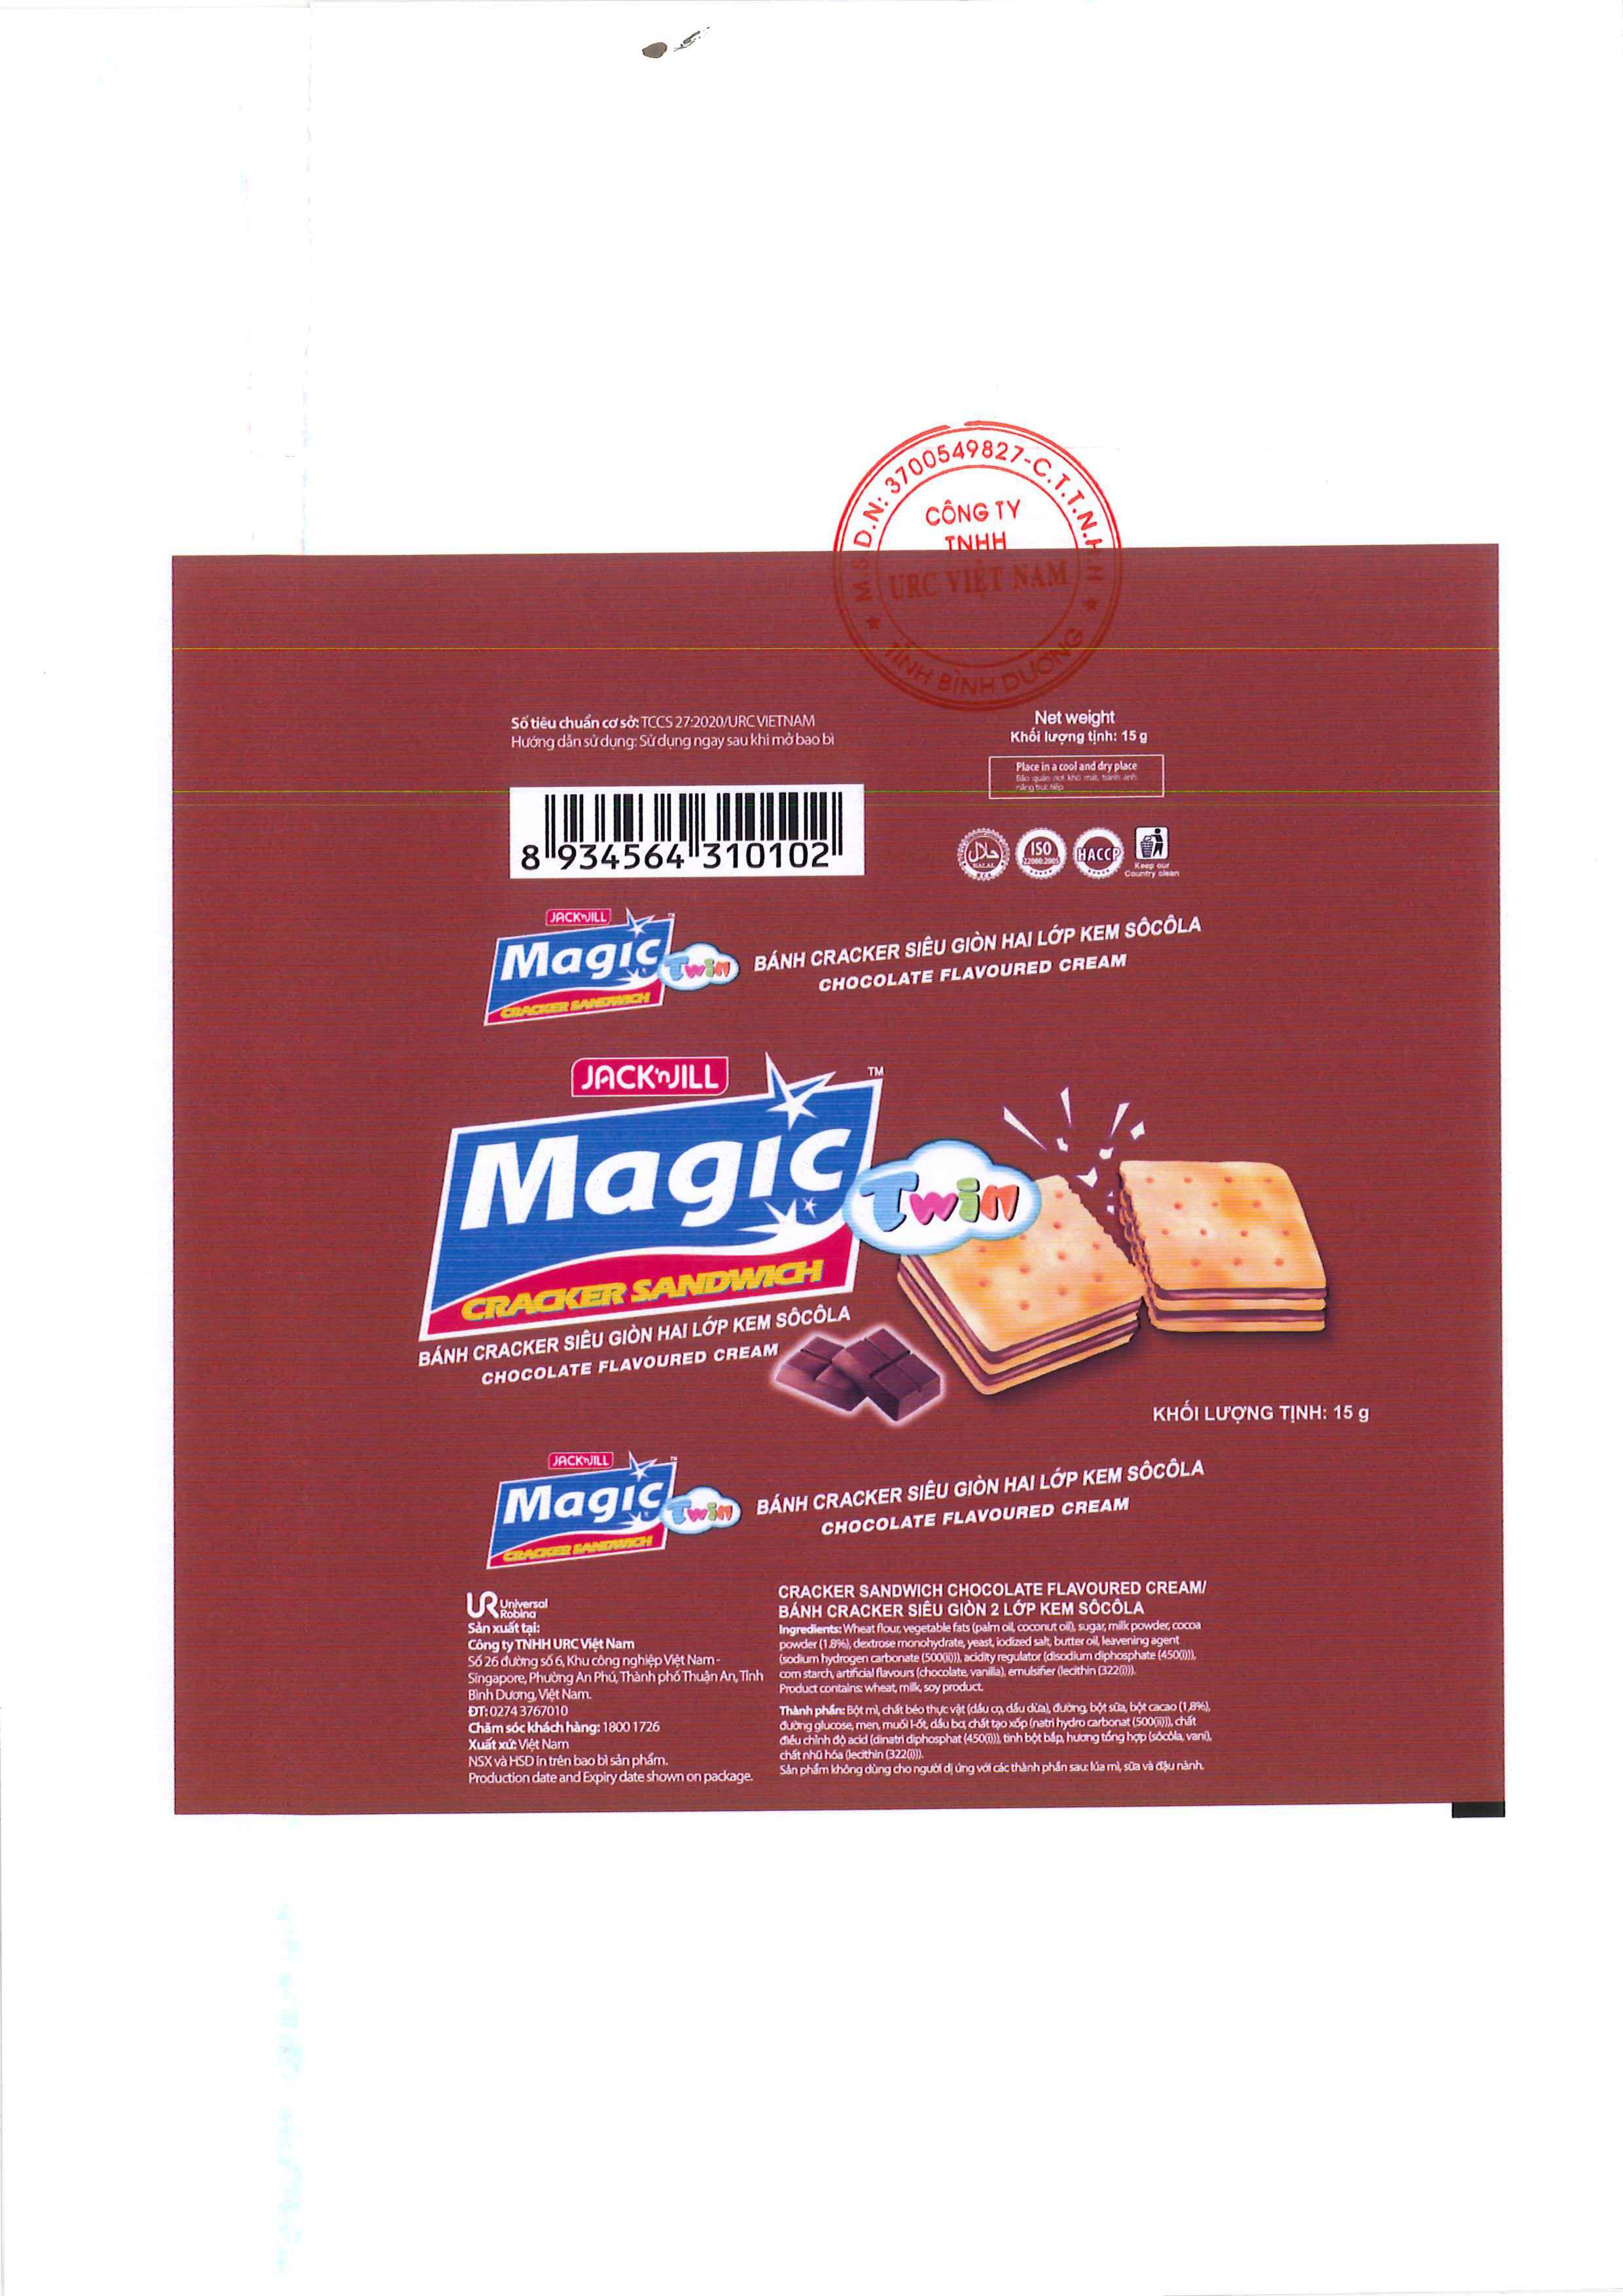 PRODUCT ANNOUNCEMENT MAGIC TWIN CRACKER SANDWICH CHOCOLATE FLAVOURED CREAM